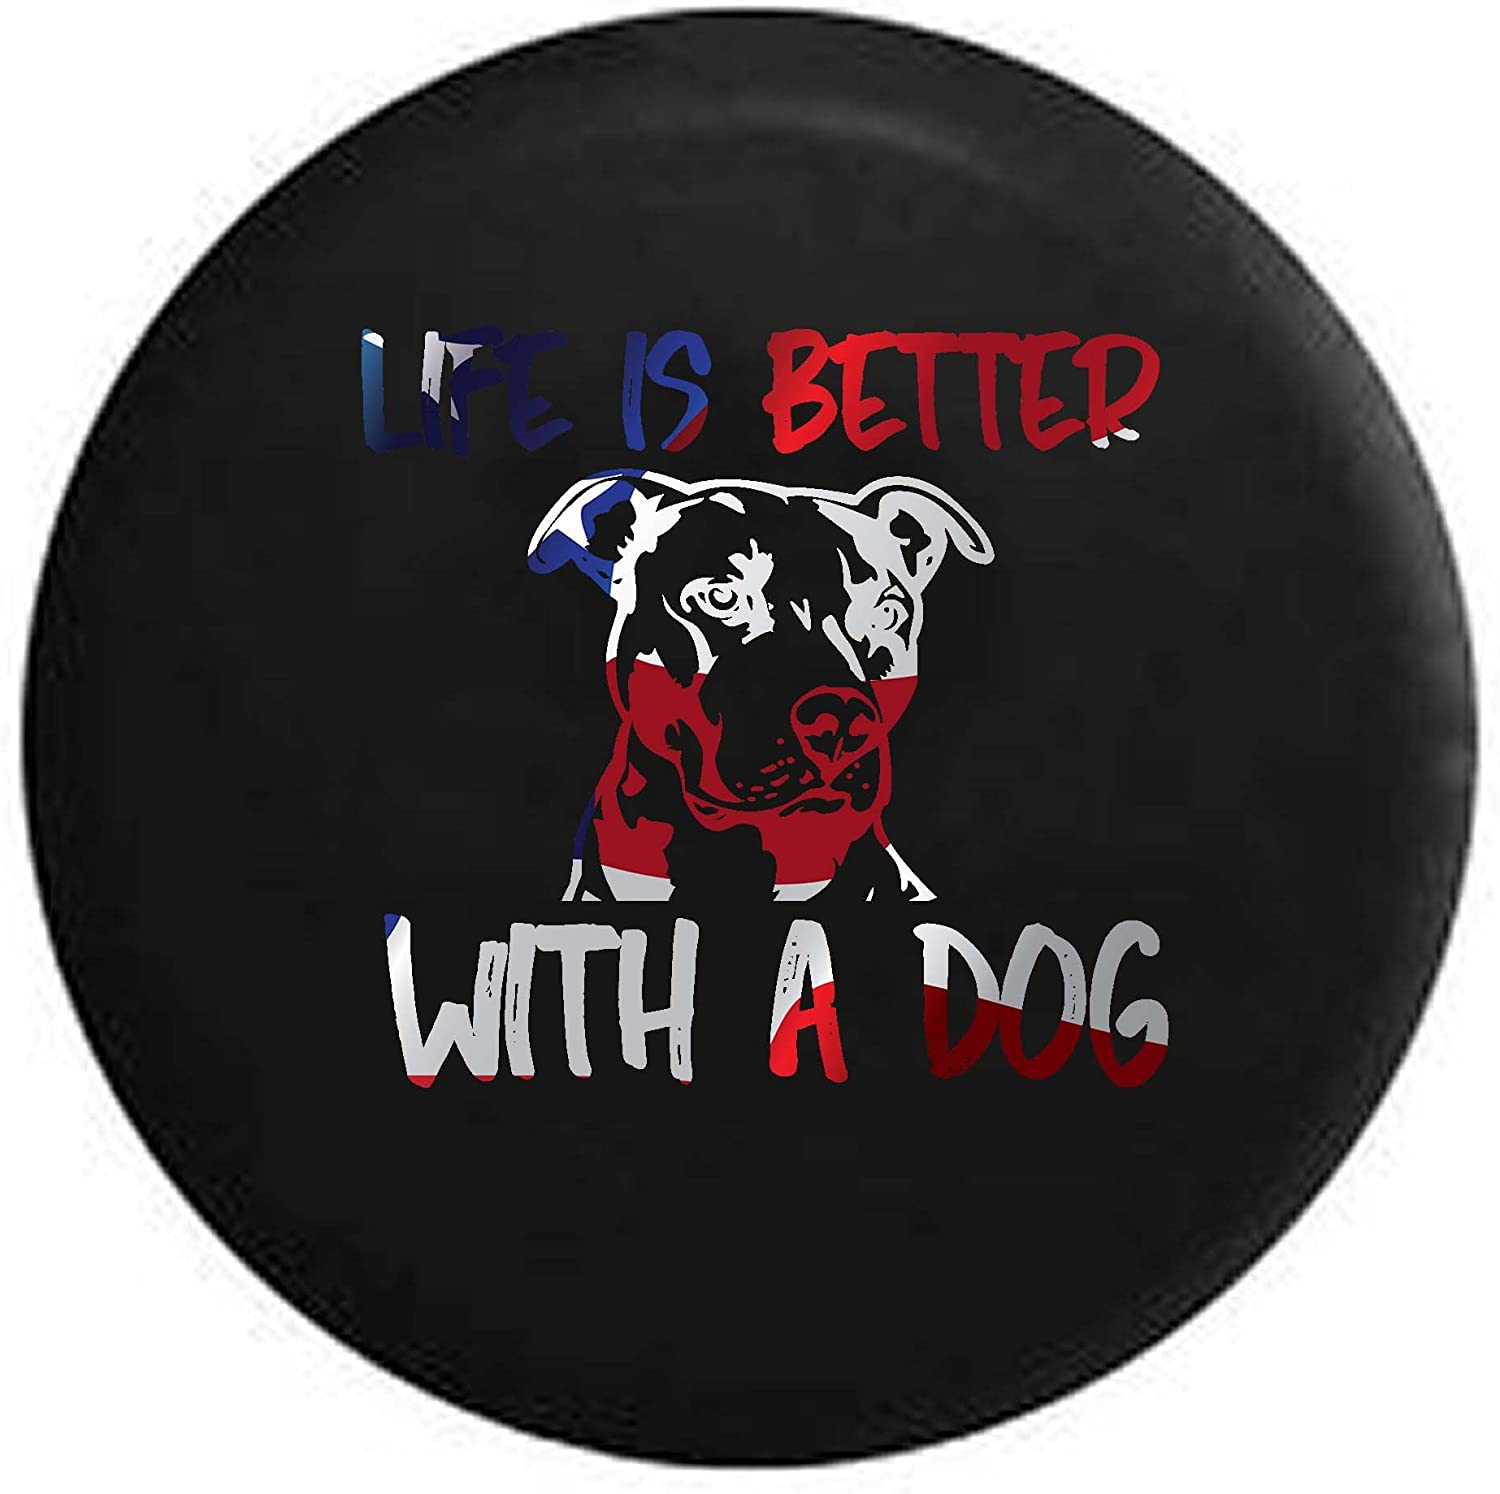 Life is Better with a Dog Pitbull Pit Bully Breed Lab Mutt Mix K9 Spare Tire Cover OEM Vinyl Black 27.5 in Pike Outdoors Flag